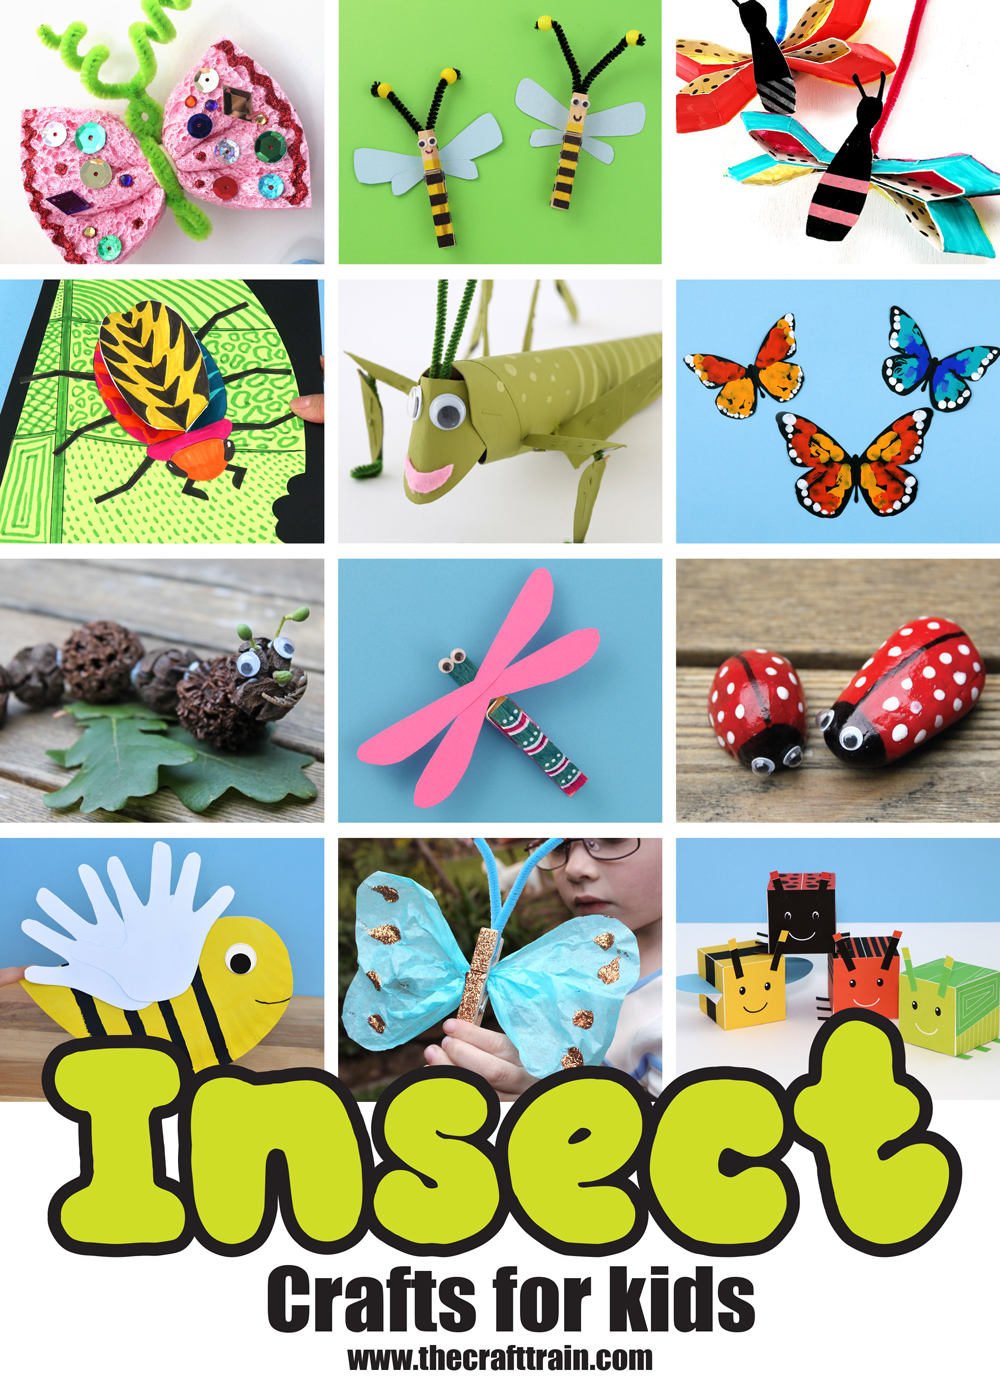 Insect crafts for kids – over 20 bug craft projects kids will love